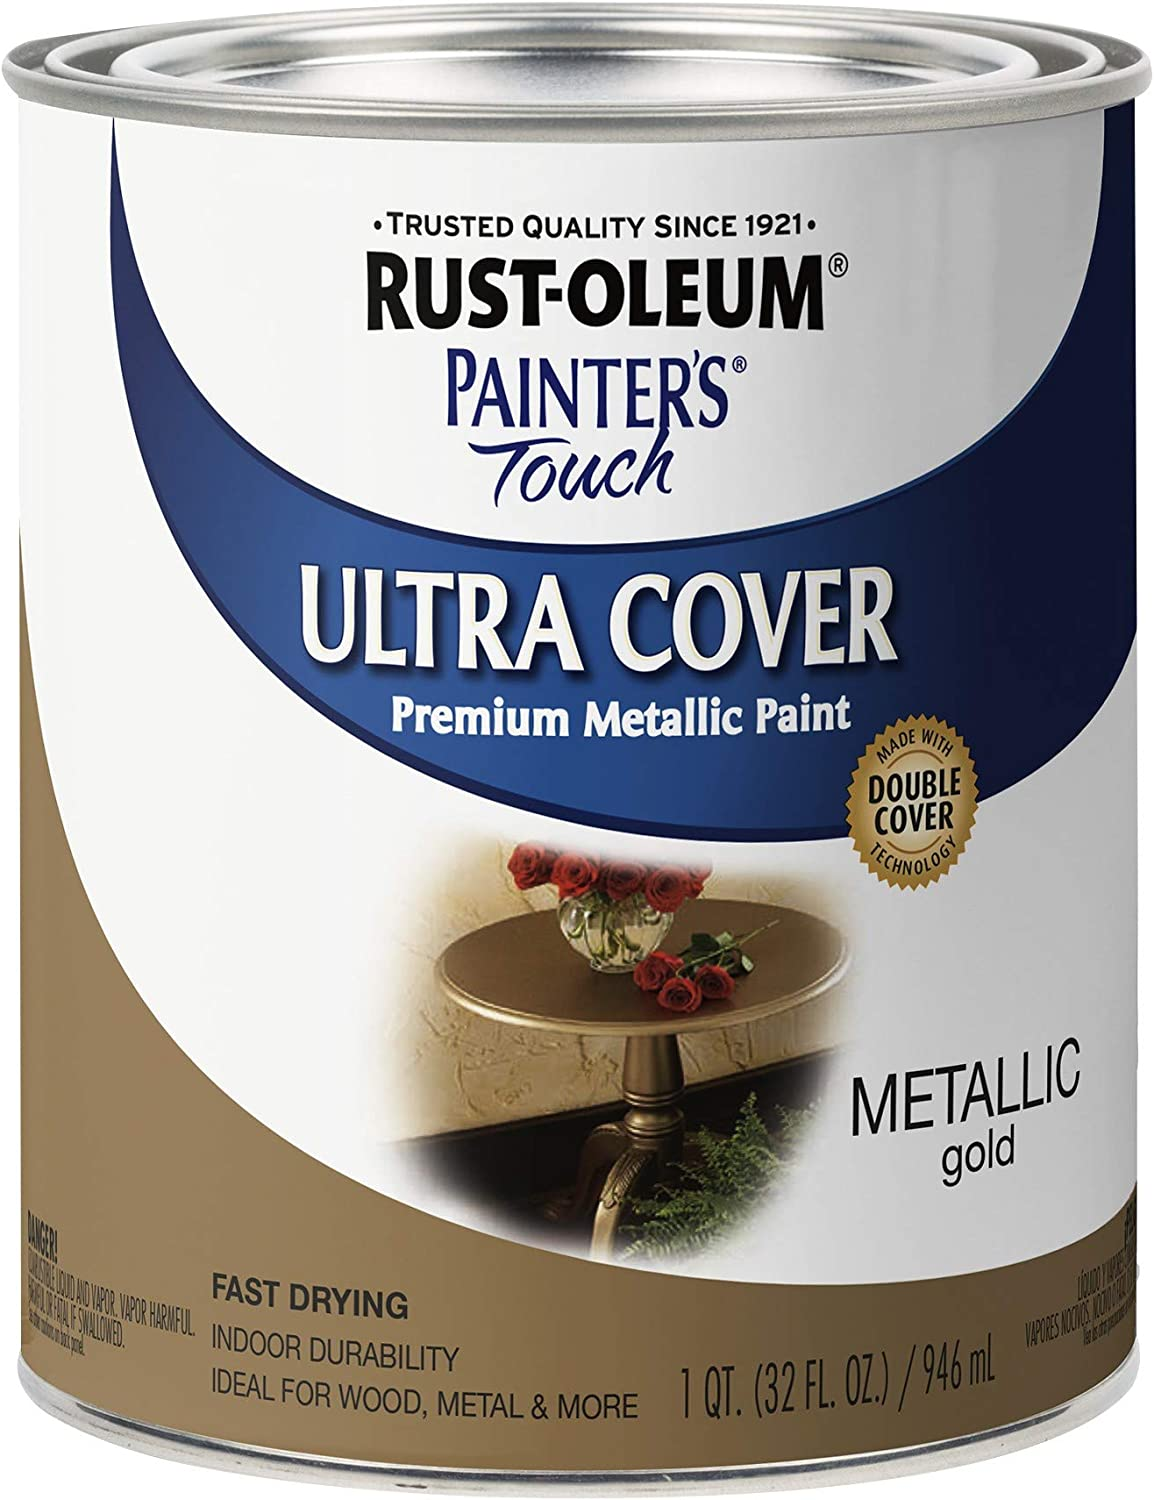 Rust-Oleum Painters Touch Gold Paint